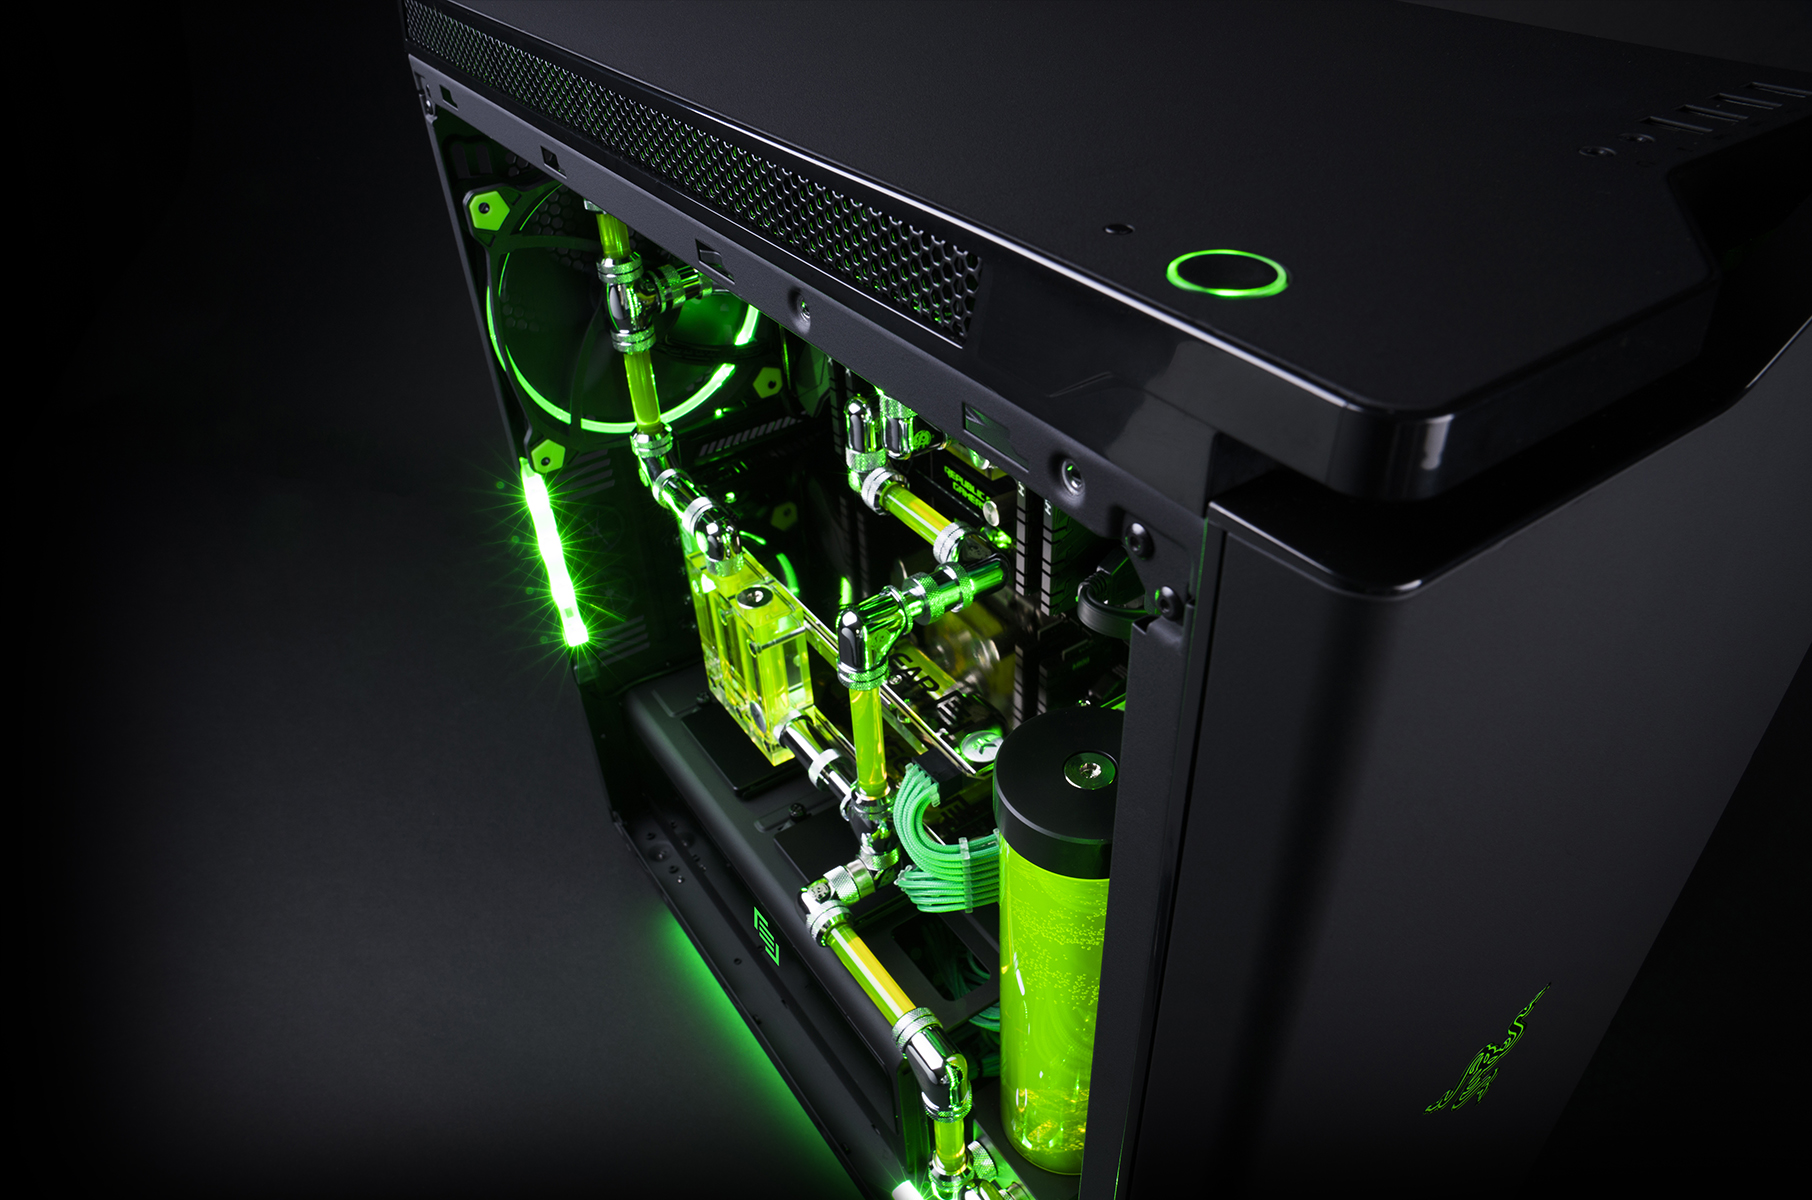 MAINGEAR  RAZER team up on the R1  RAZER